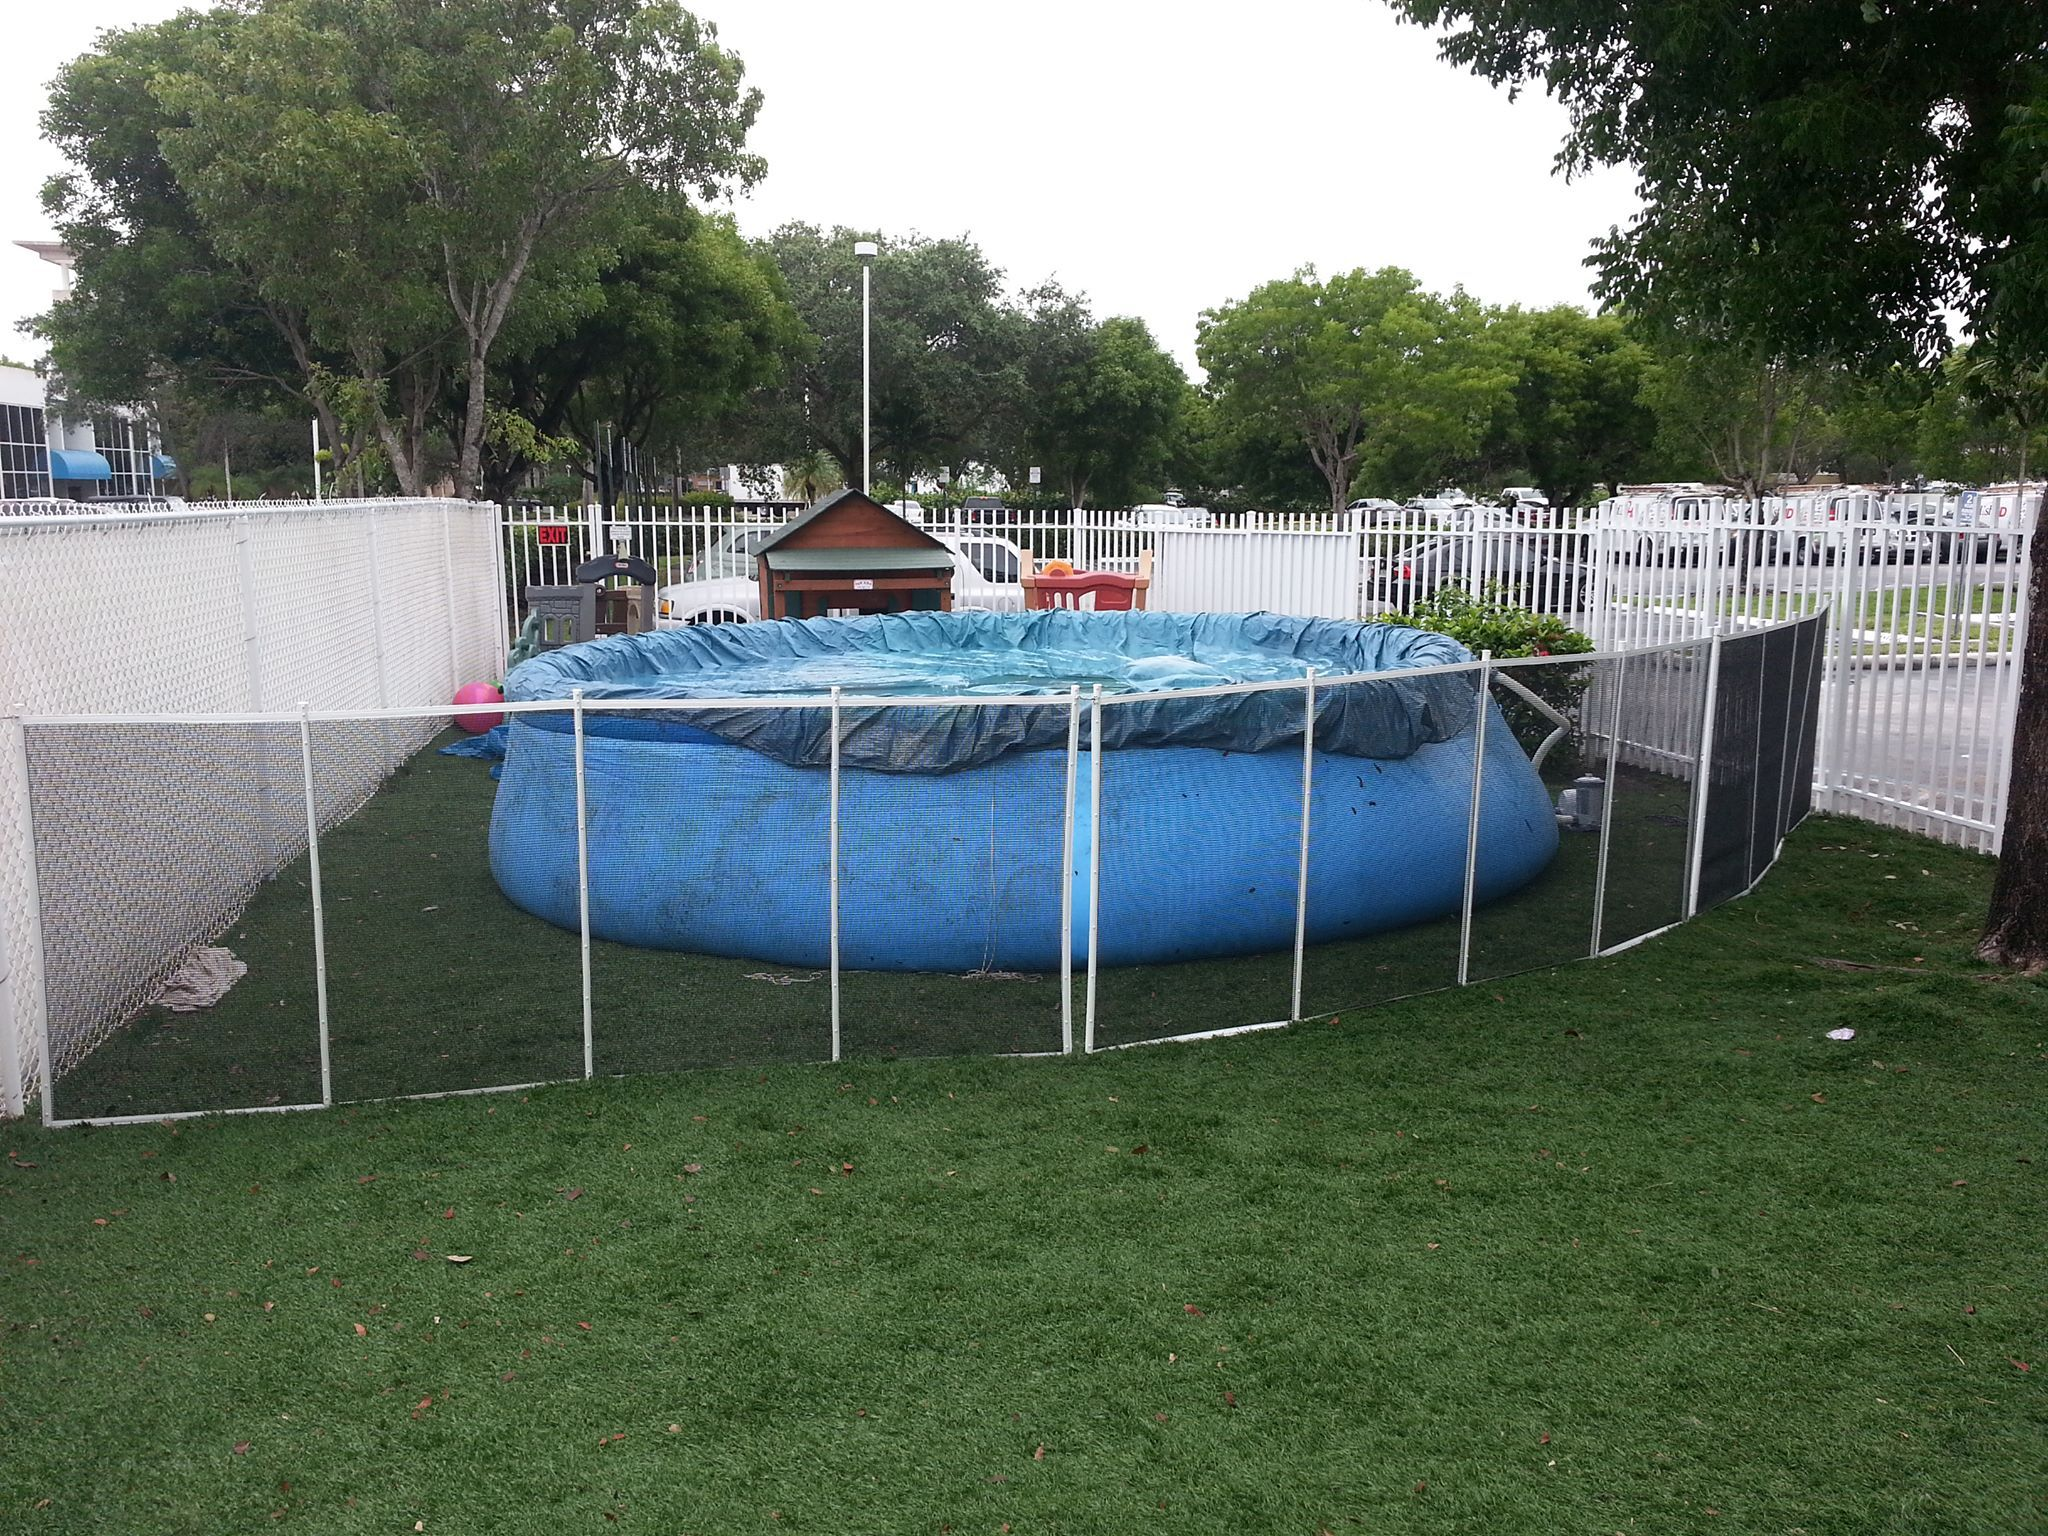 Above Ground Pool Fence black mesh pool fence with white poles installed in grass for